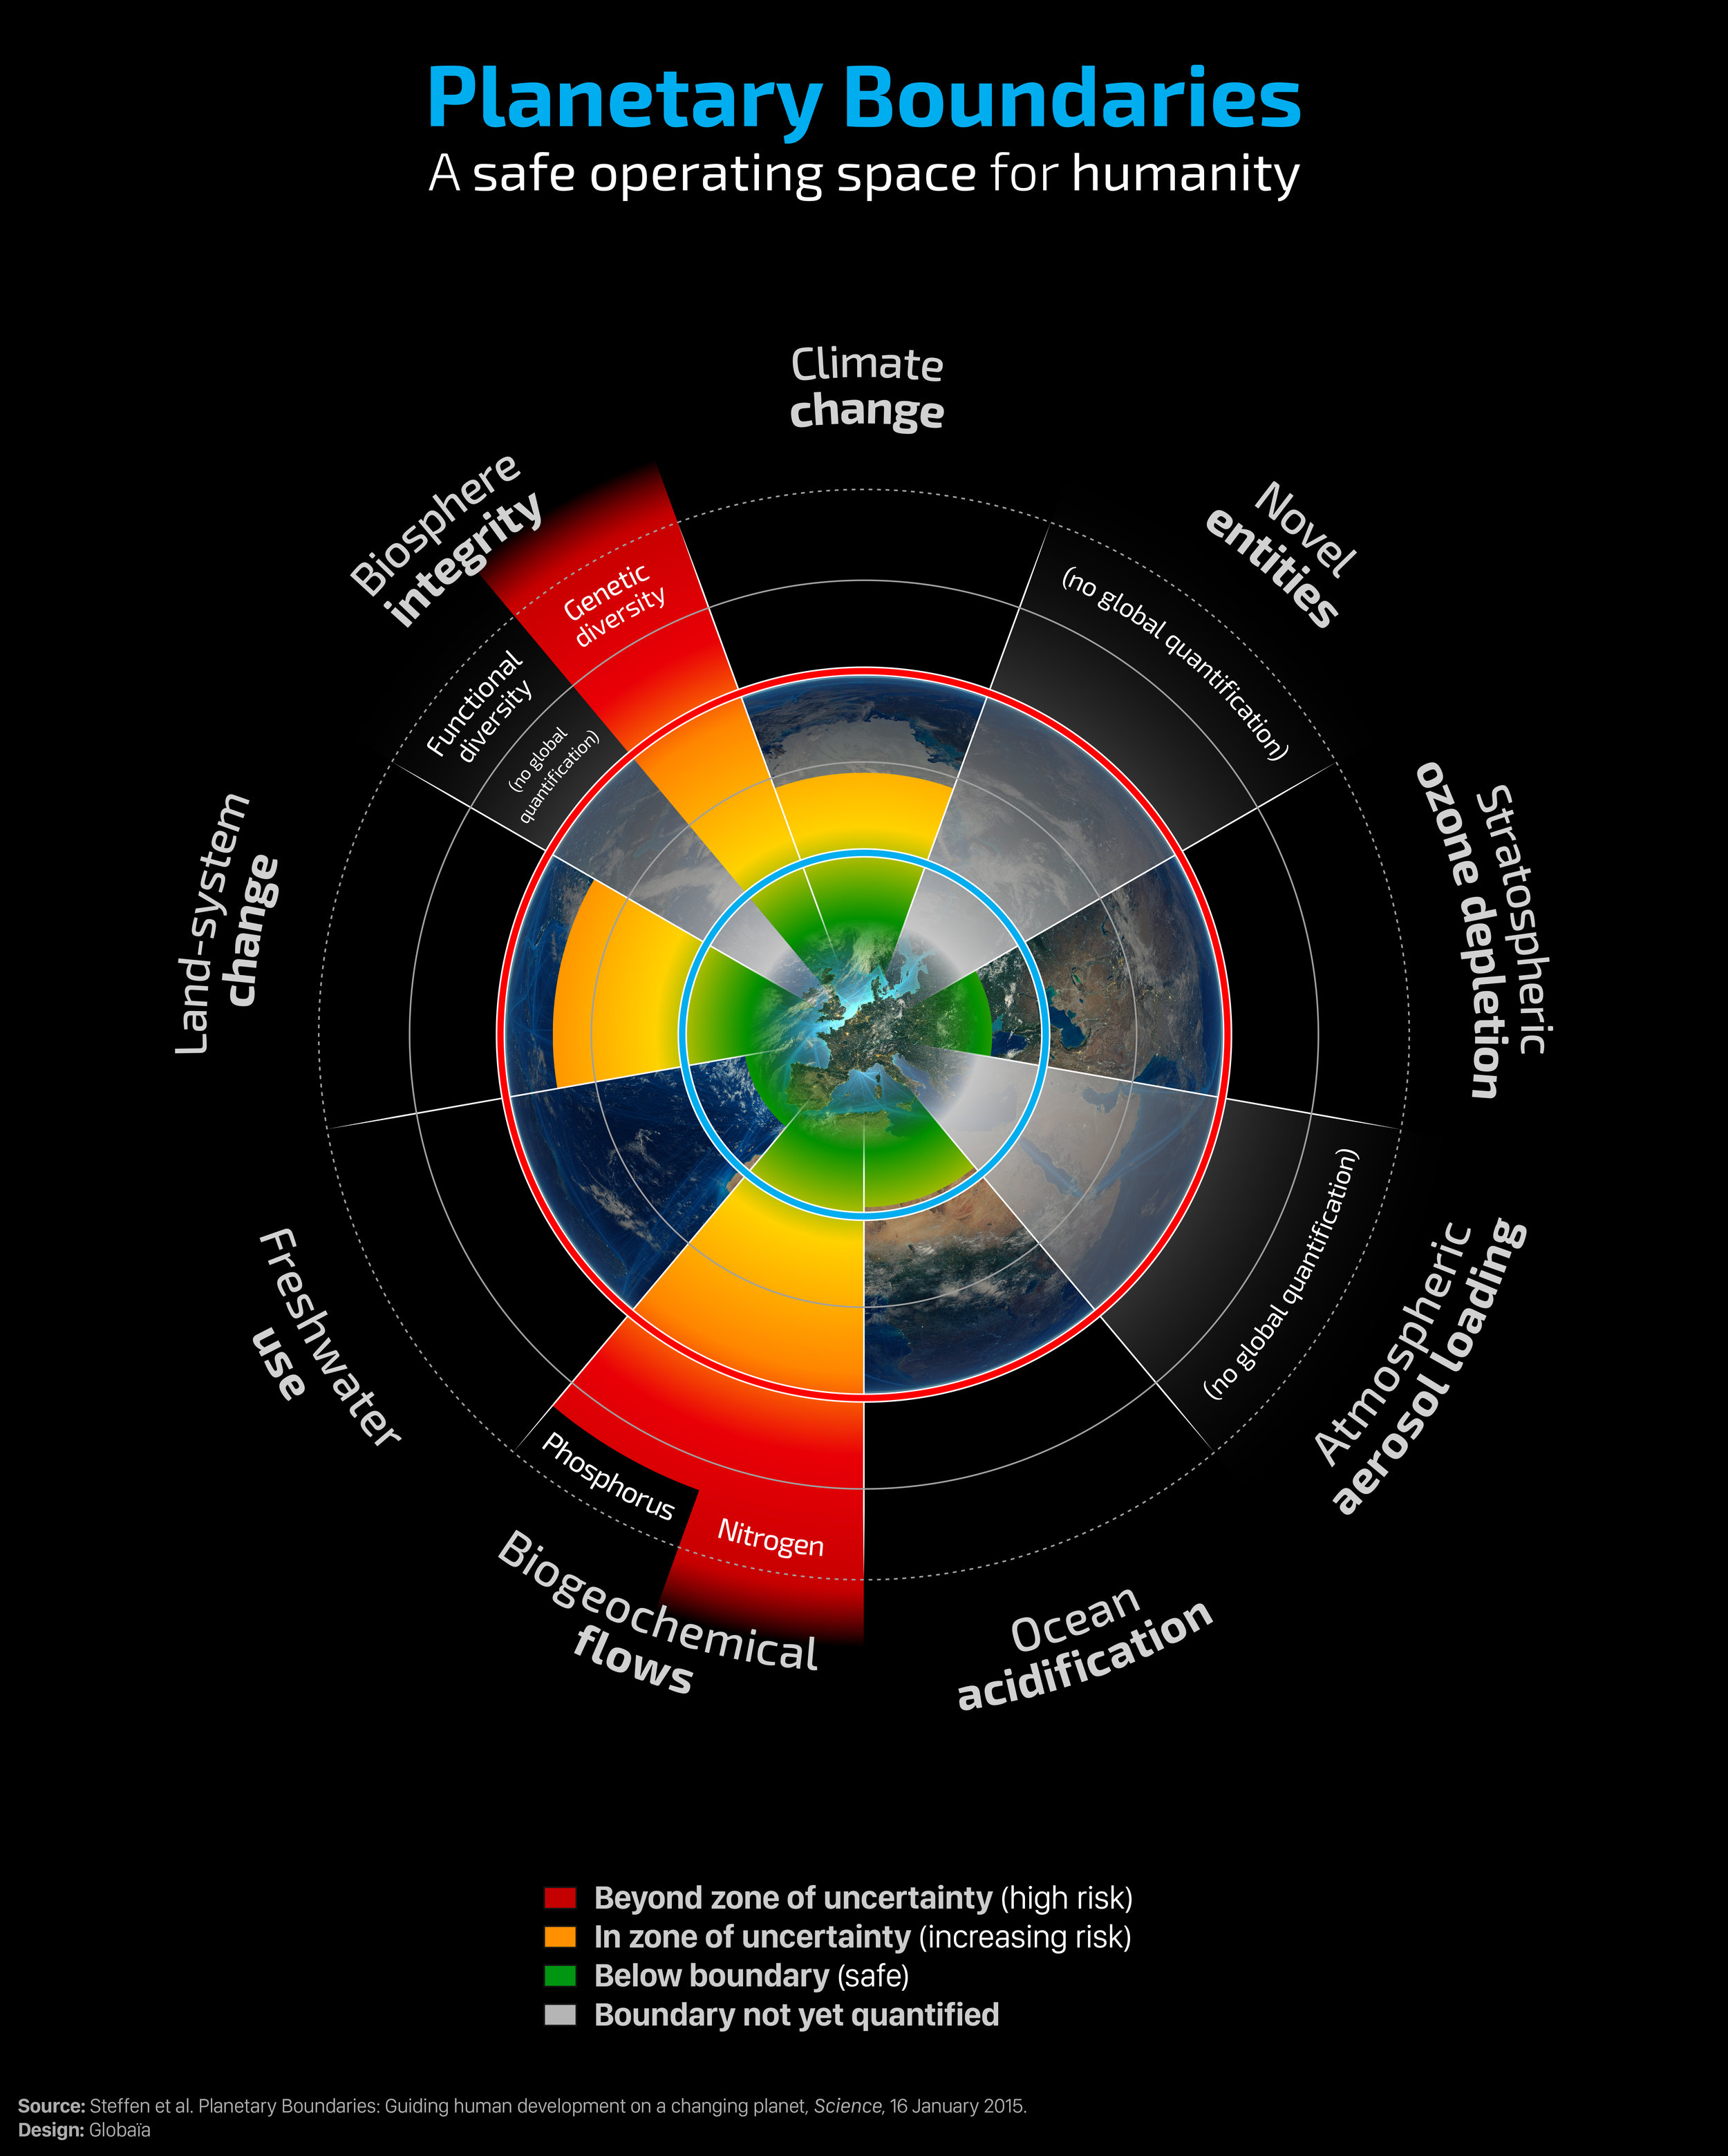 Stockholm Resilience Centre's 9 planetary boundaries